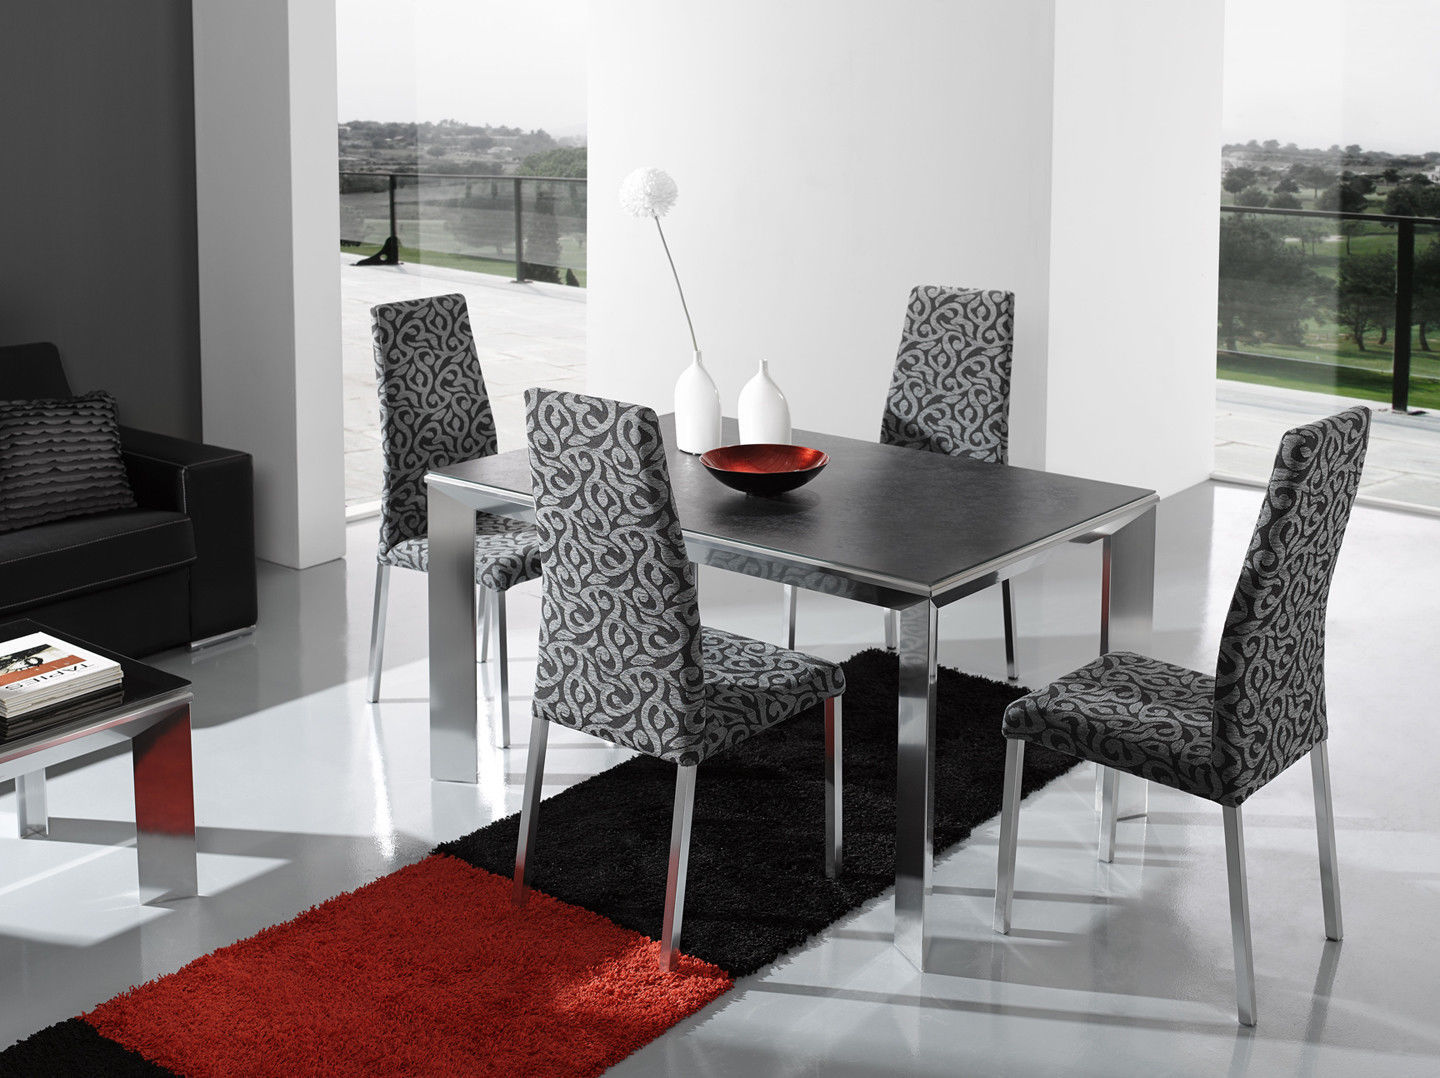 Chic Contemporary Style Nadia Table with Patry Chairs Dining Set Modern Design